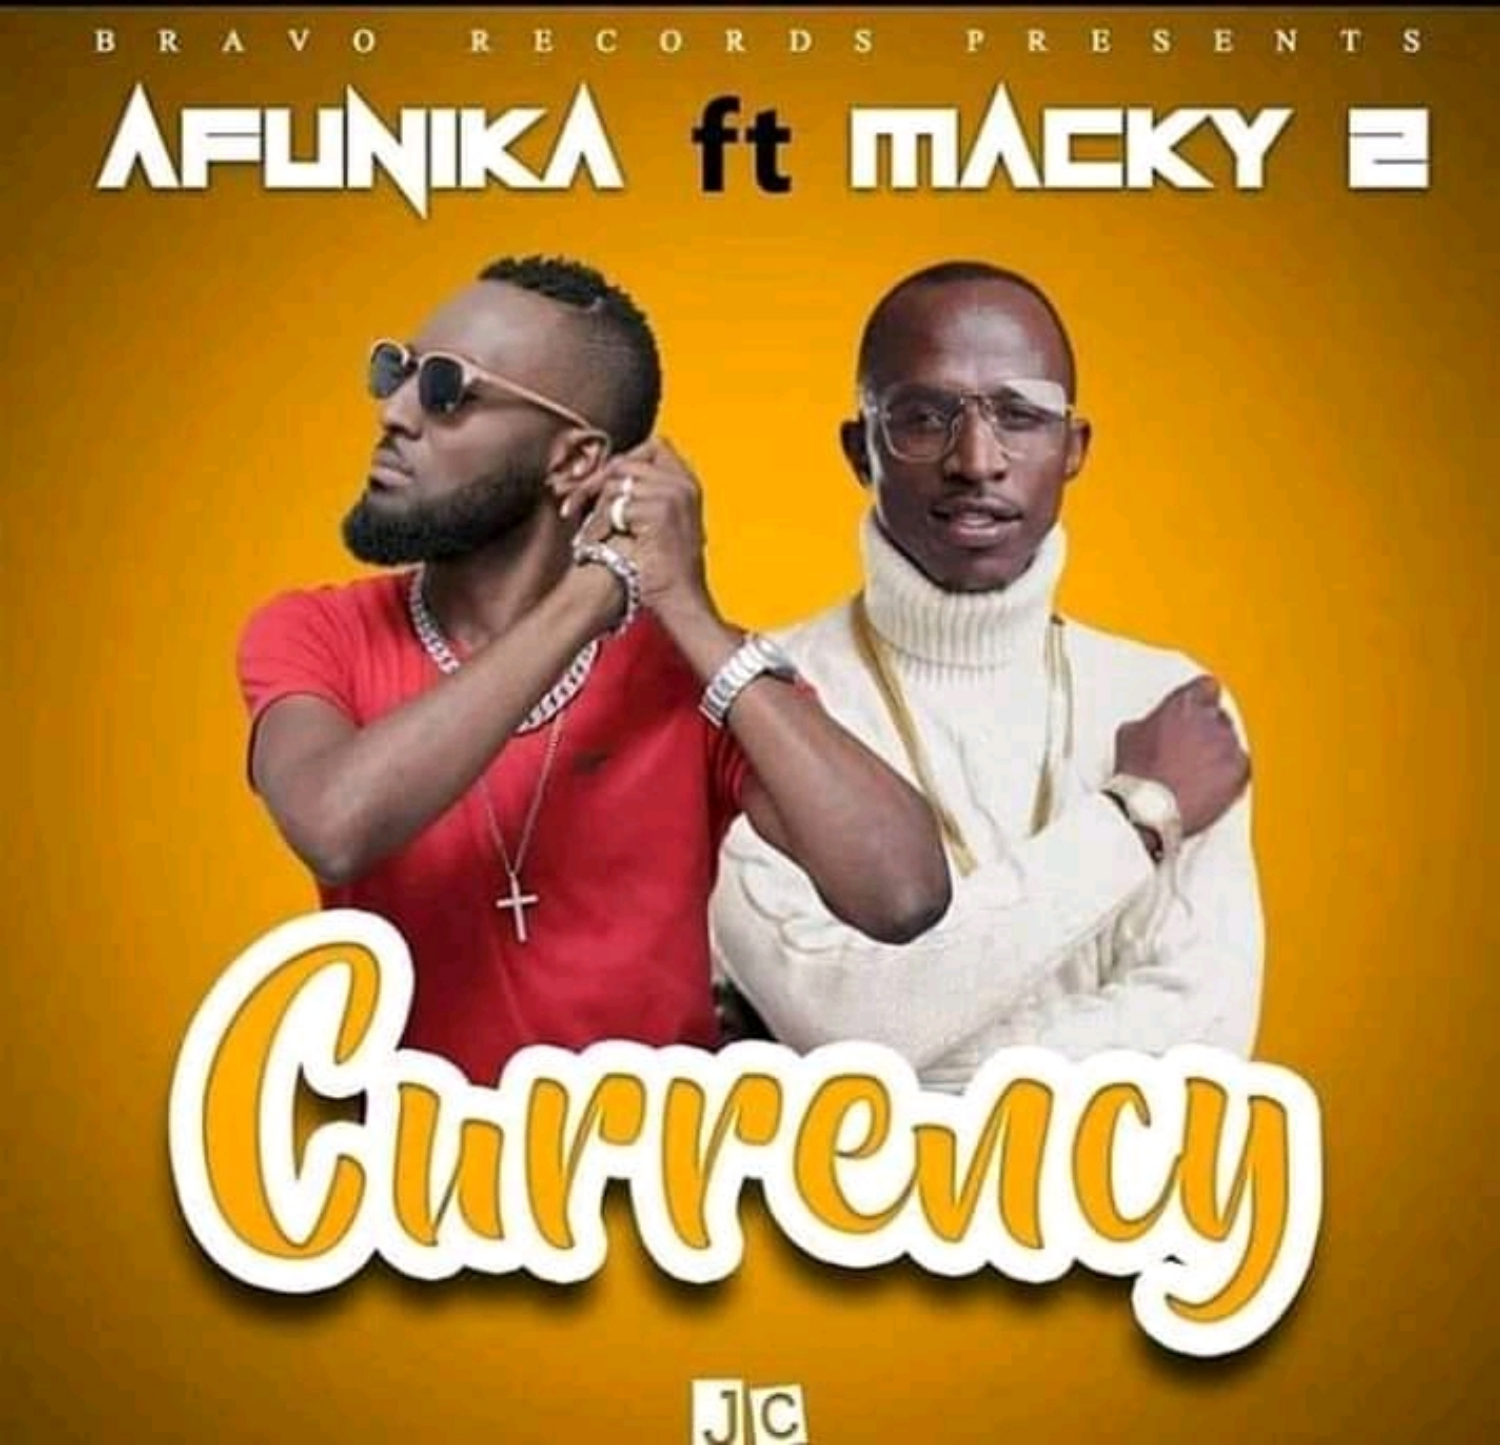 Afunika Ft. Macky 2 Currency